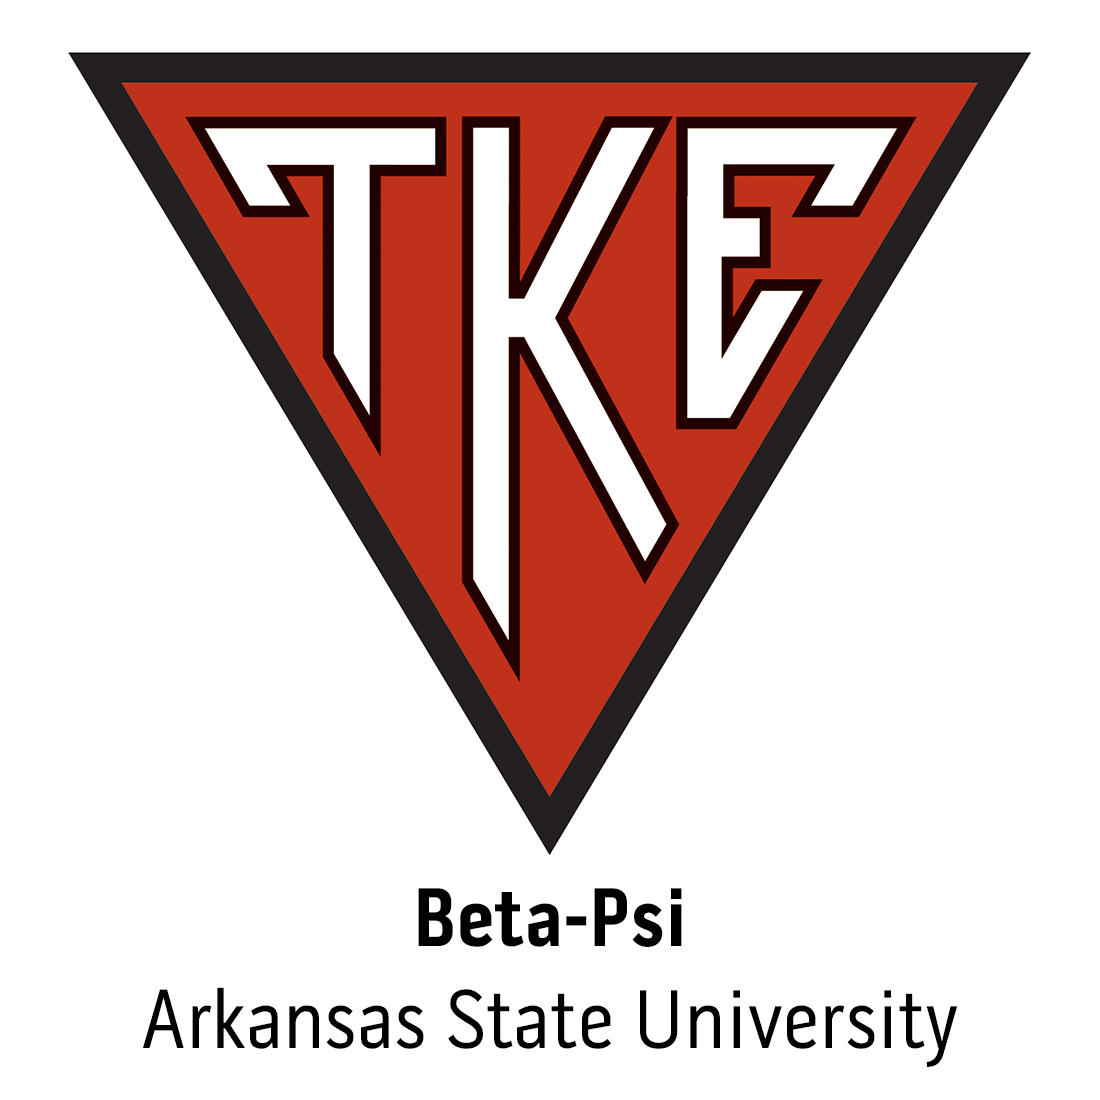 Beta-Psi Colony at Arkansas State University